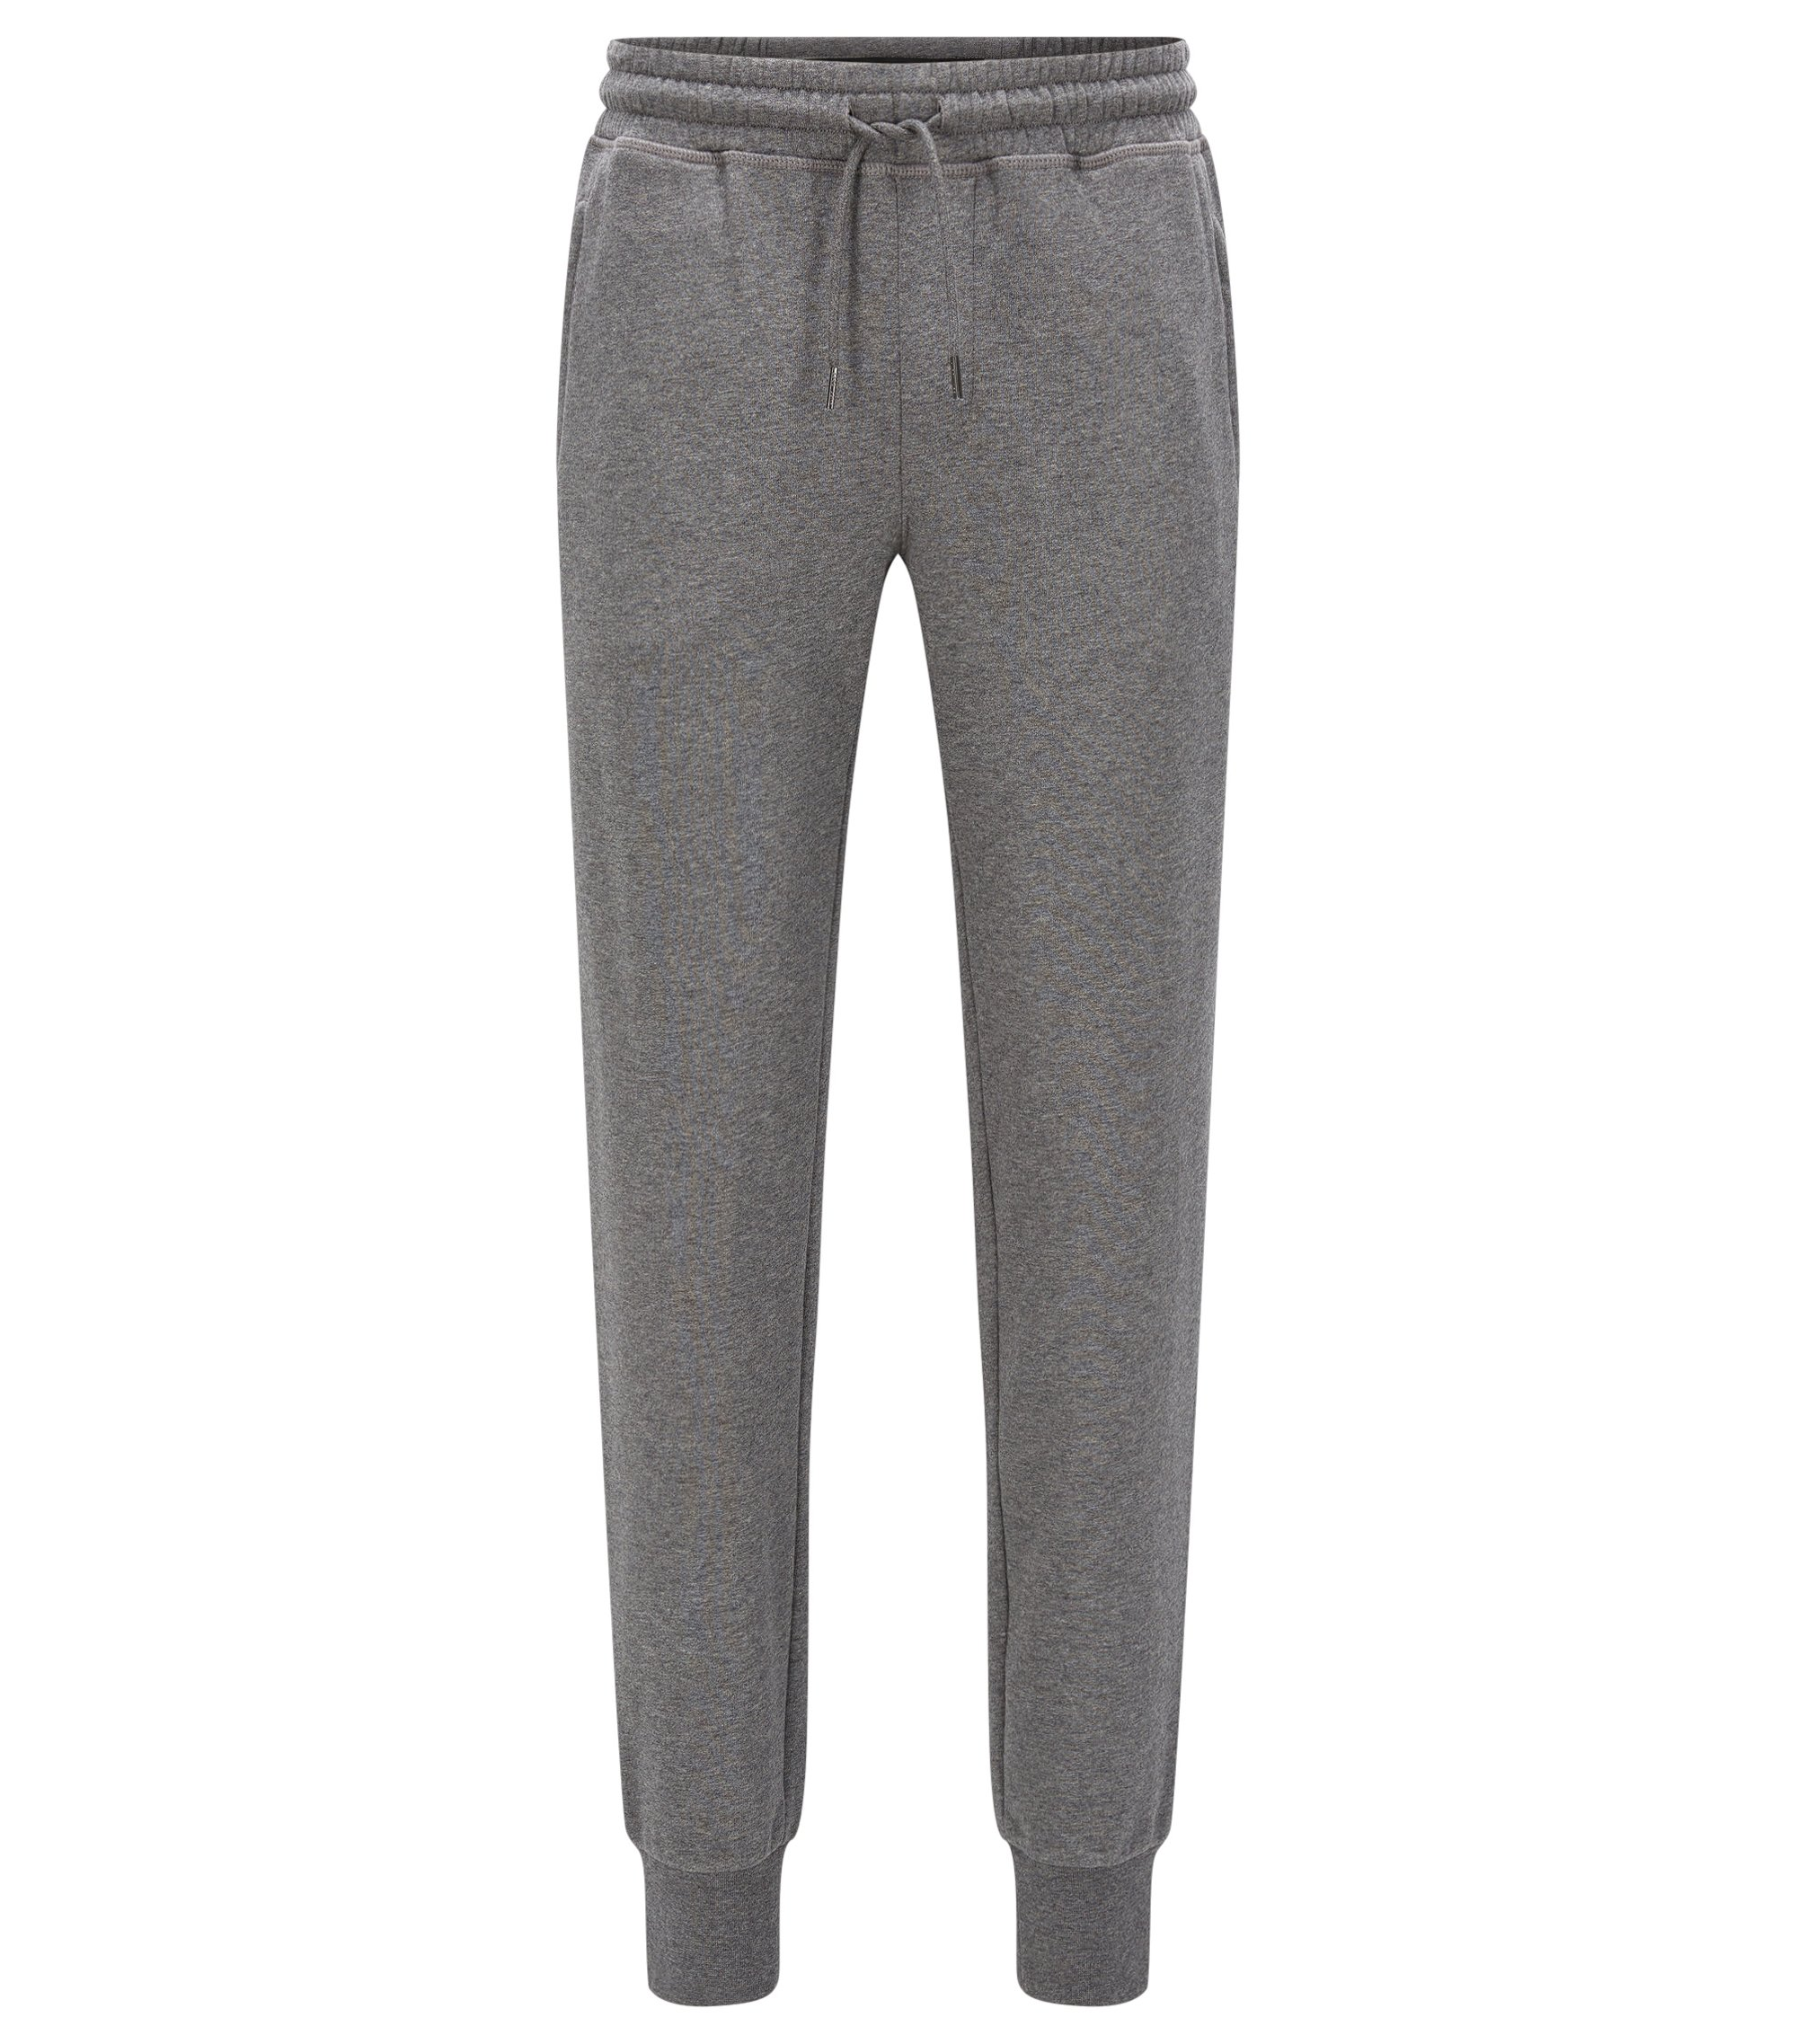 Pantalon Regular Fit en molleton Terry de coton, Gris